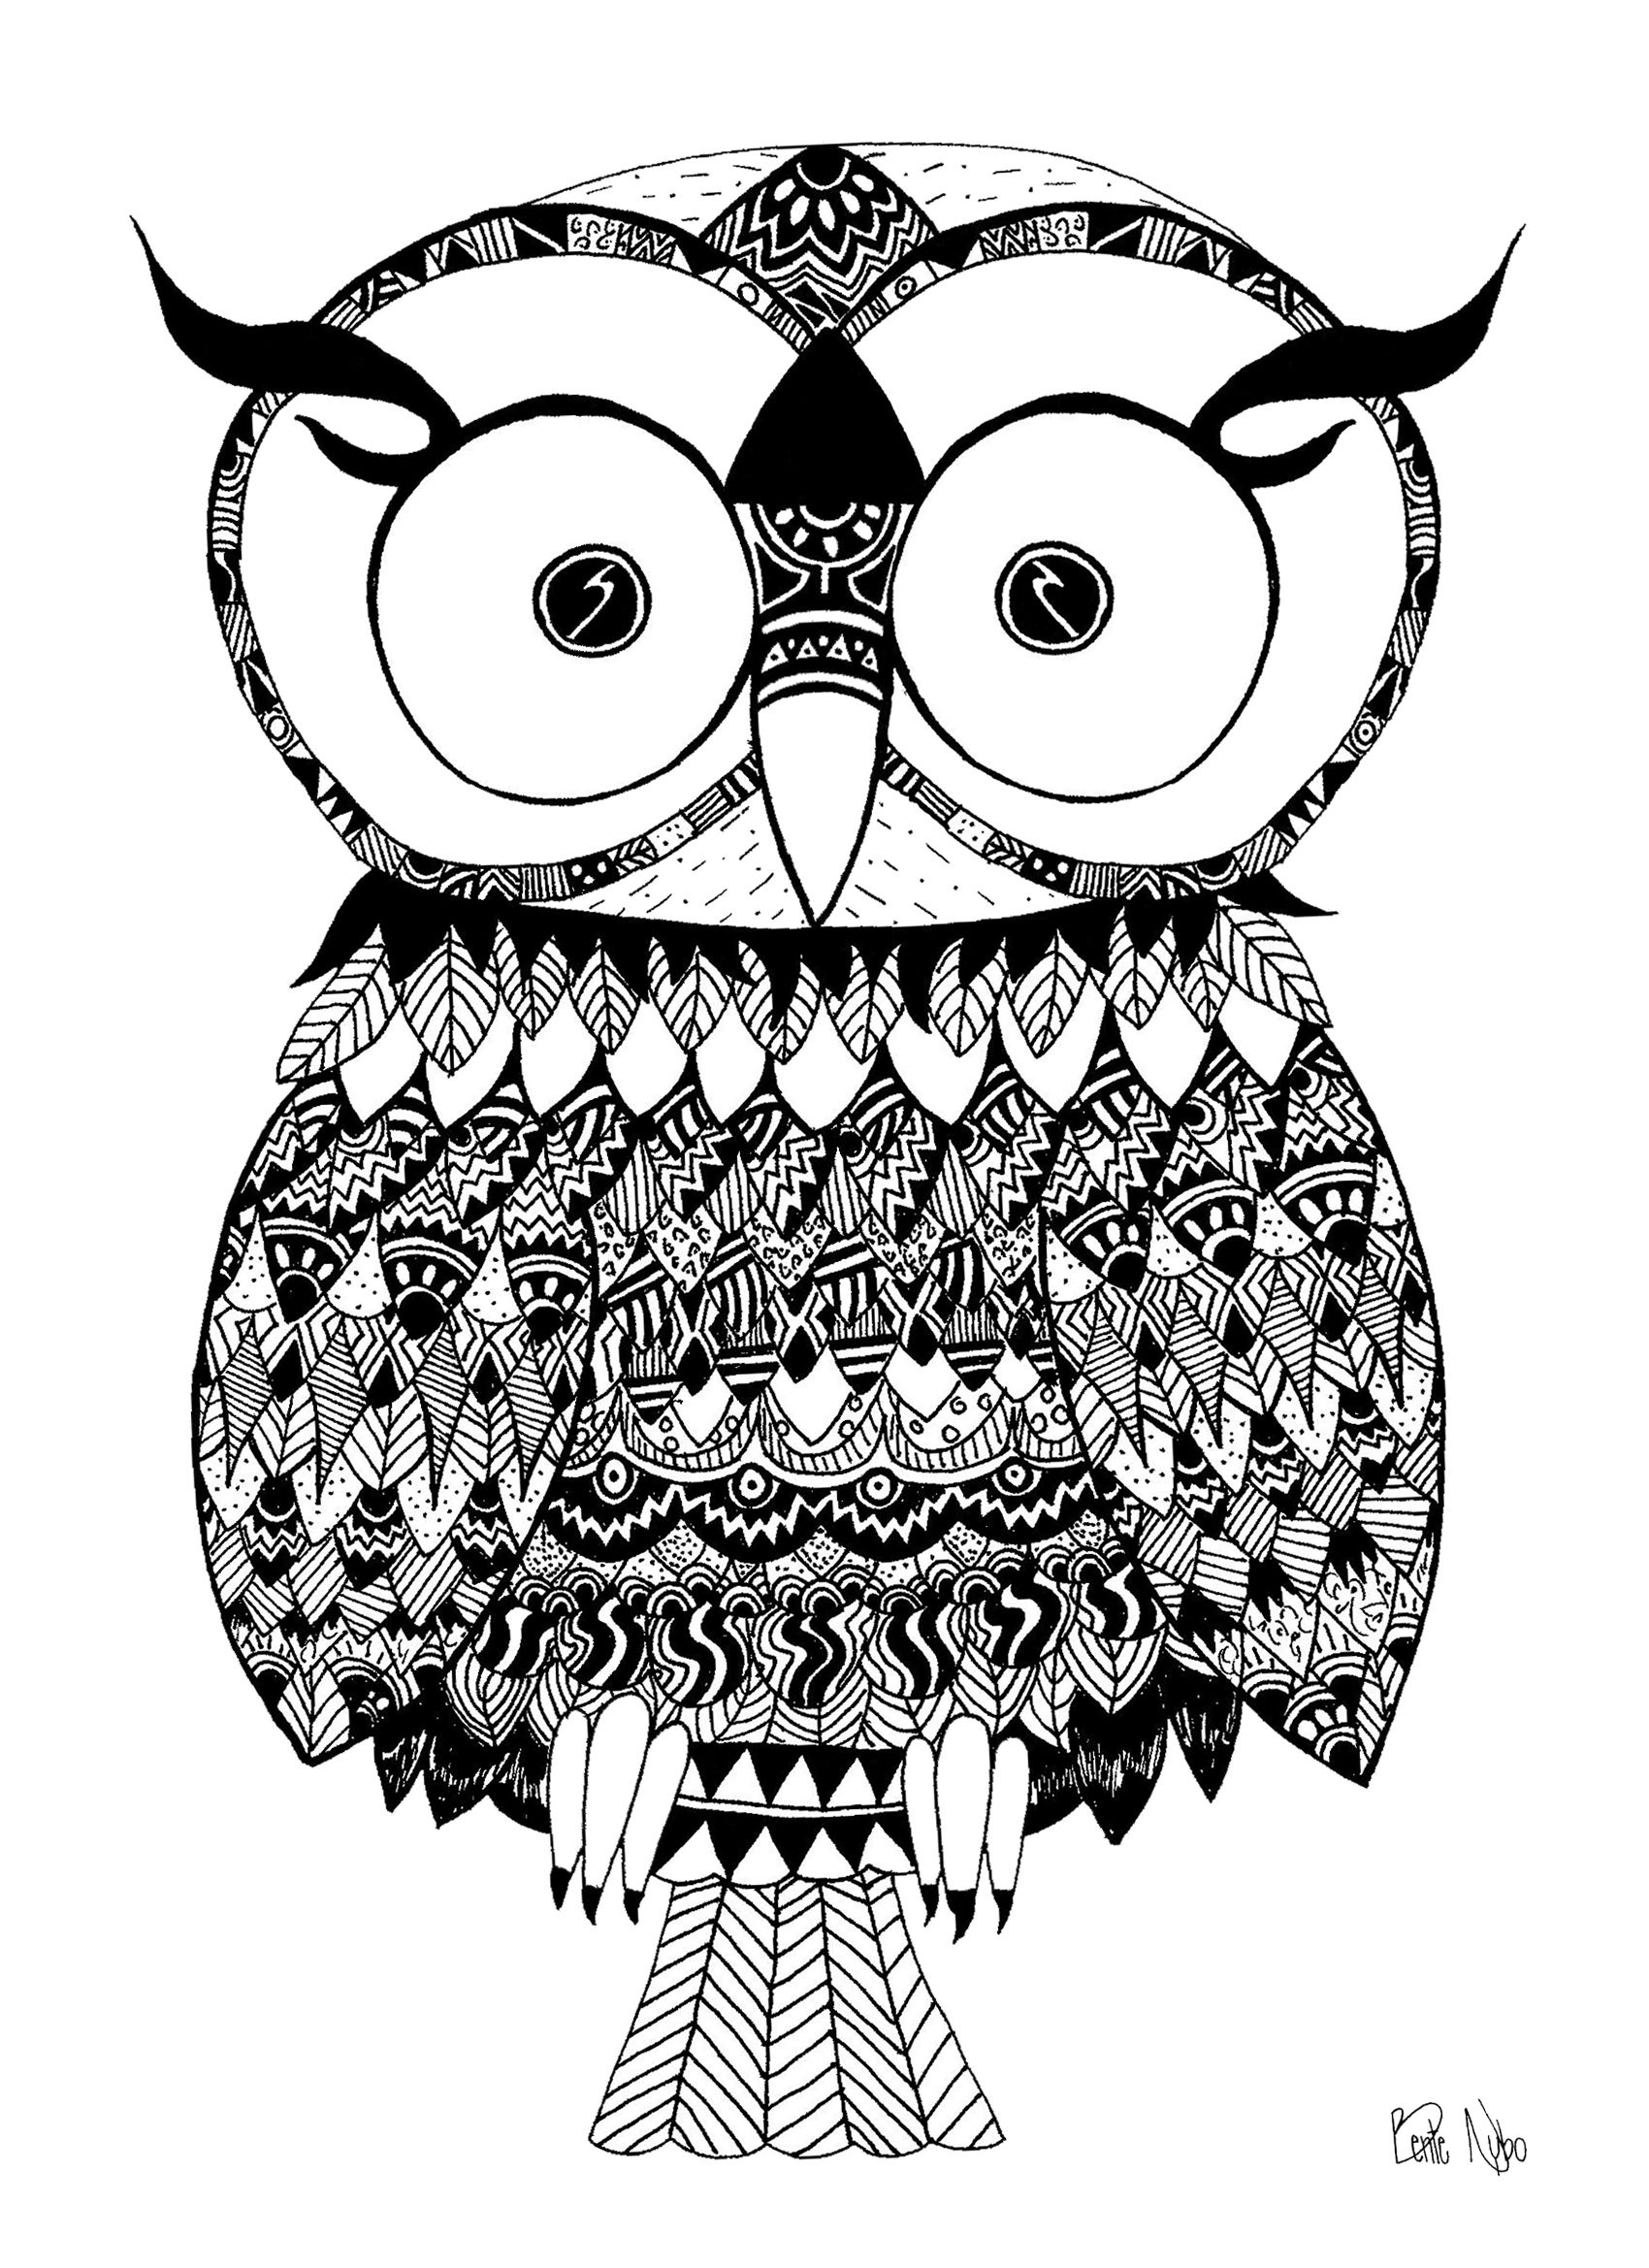 Awesome for the living-room or kids room.  Scandinavian Trendy.    Tribal Inka Owl #inka #Owl#Drawing #pattern #tribal #Danish #Design #HandDrawn  #Nybo  #Plakat #Black #White #Poster #Plakat #Scandinavia #NewNordic #Nordic #HandDrawn #HooHoo #Ugle #TilSalg #PlakatKunst 150 DKK